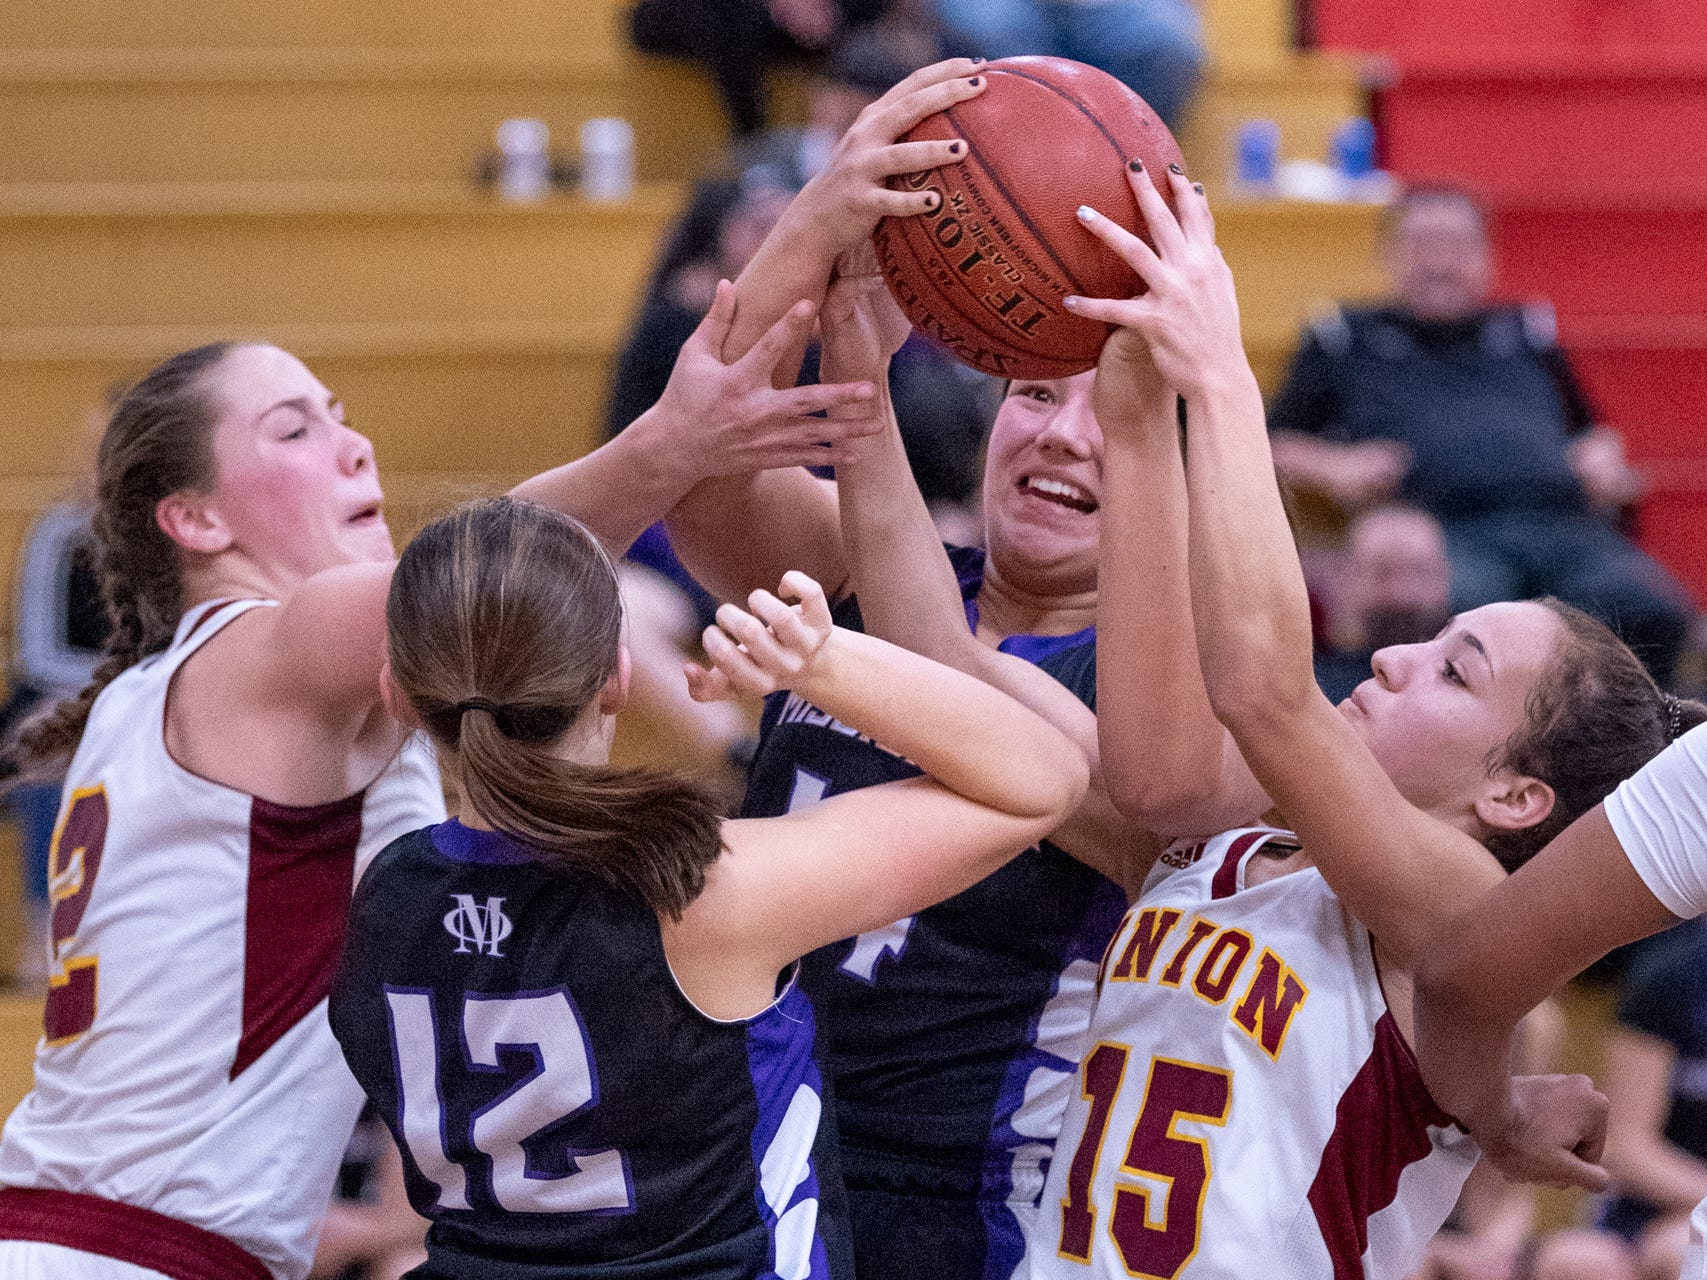 Tulare Union's Morgan Hatton, left, Mission Oak's Kailey Silva (12), Mission Oak's Kayleigh Lopes and Tulare Union's Brissa Allen go for a rebound in a girls basketball game on Friday, February 1, 2019.